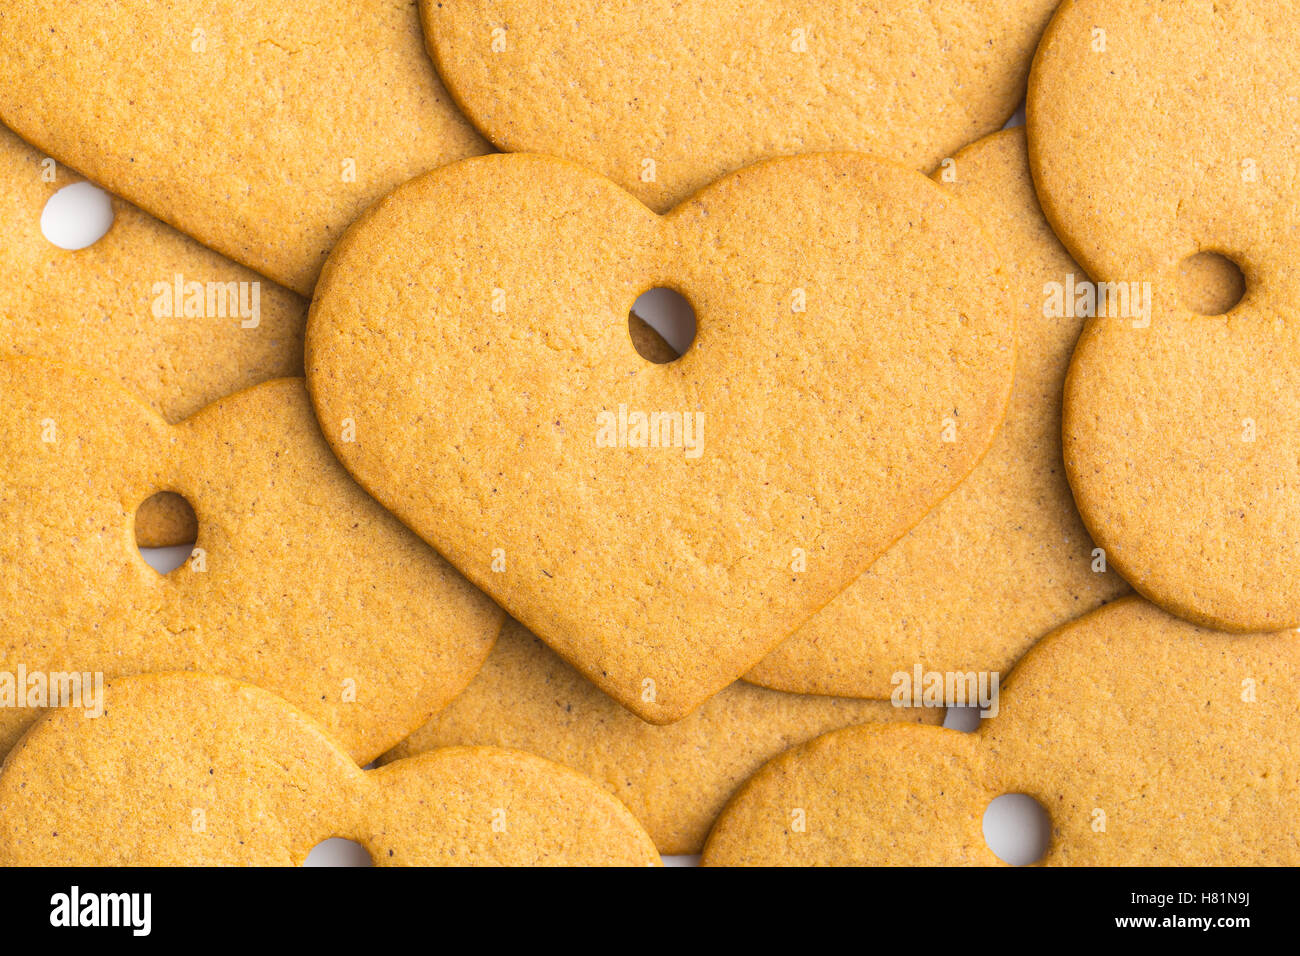 Tasty gingerbread hearts. Top view. - Stock Image